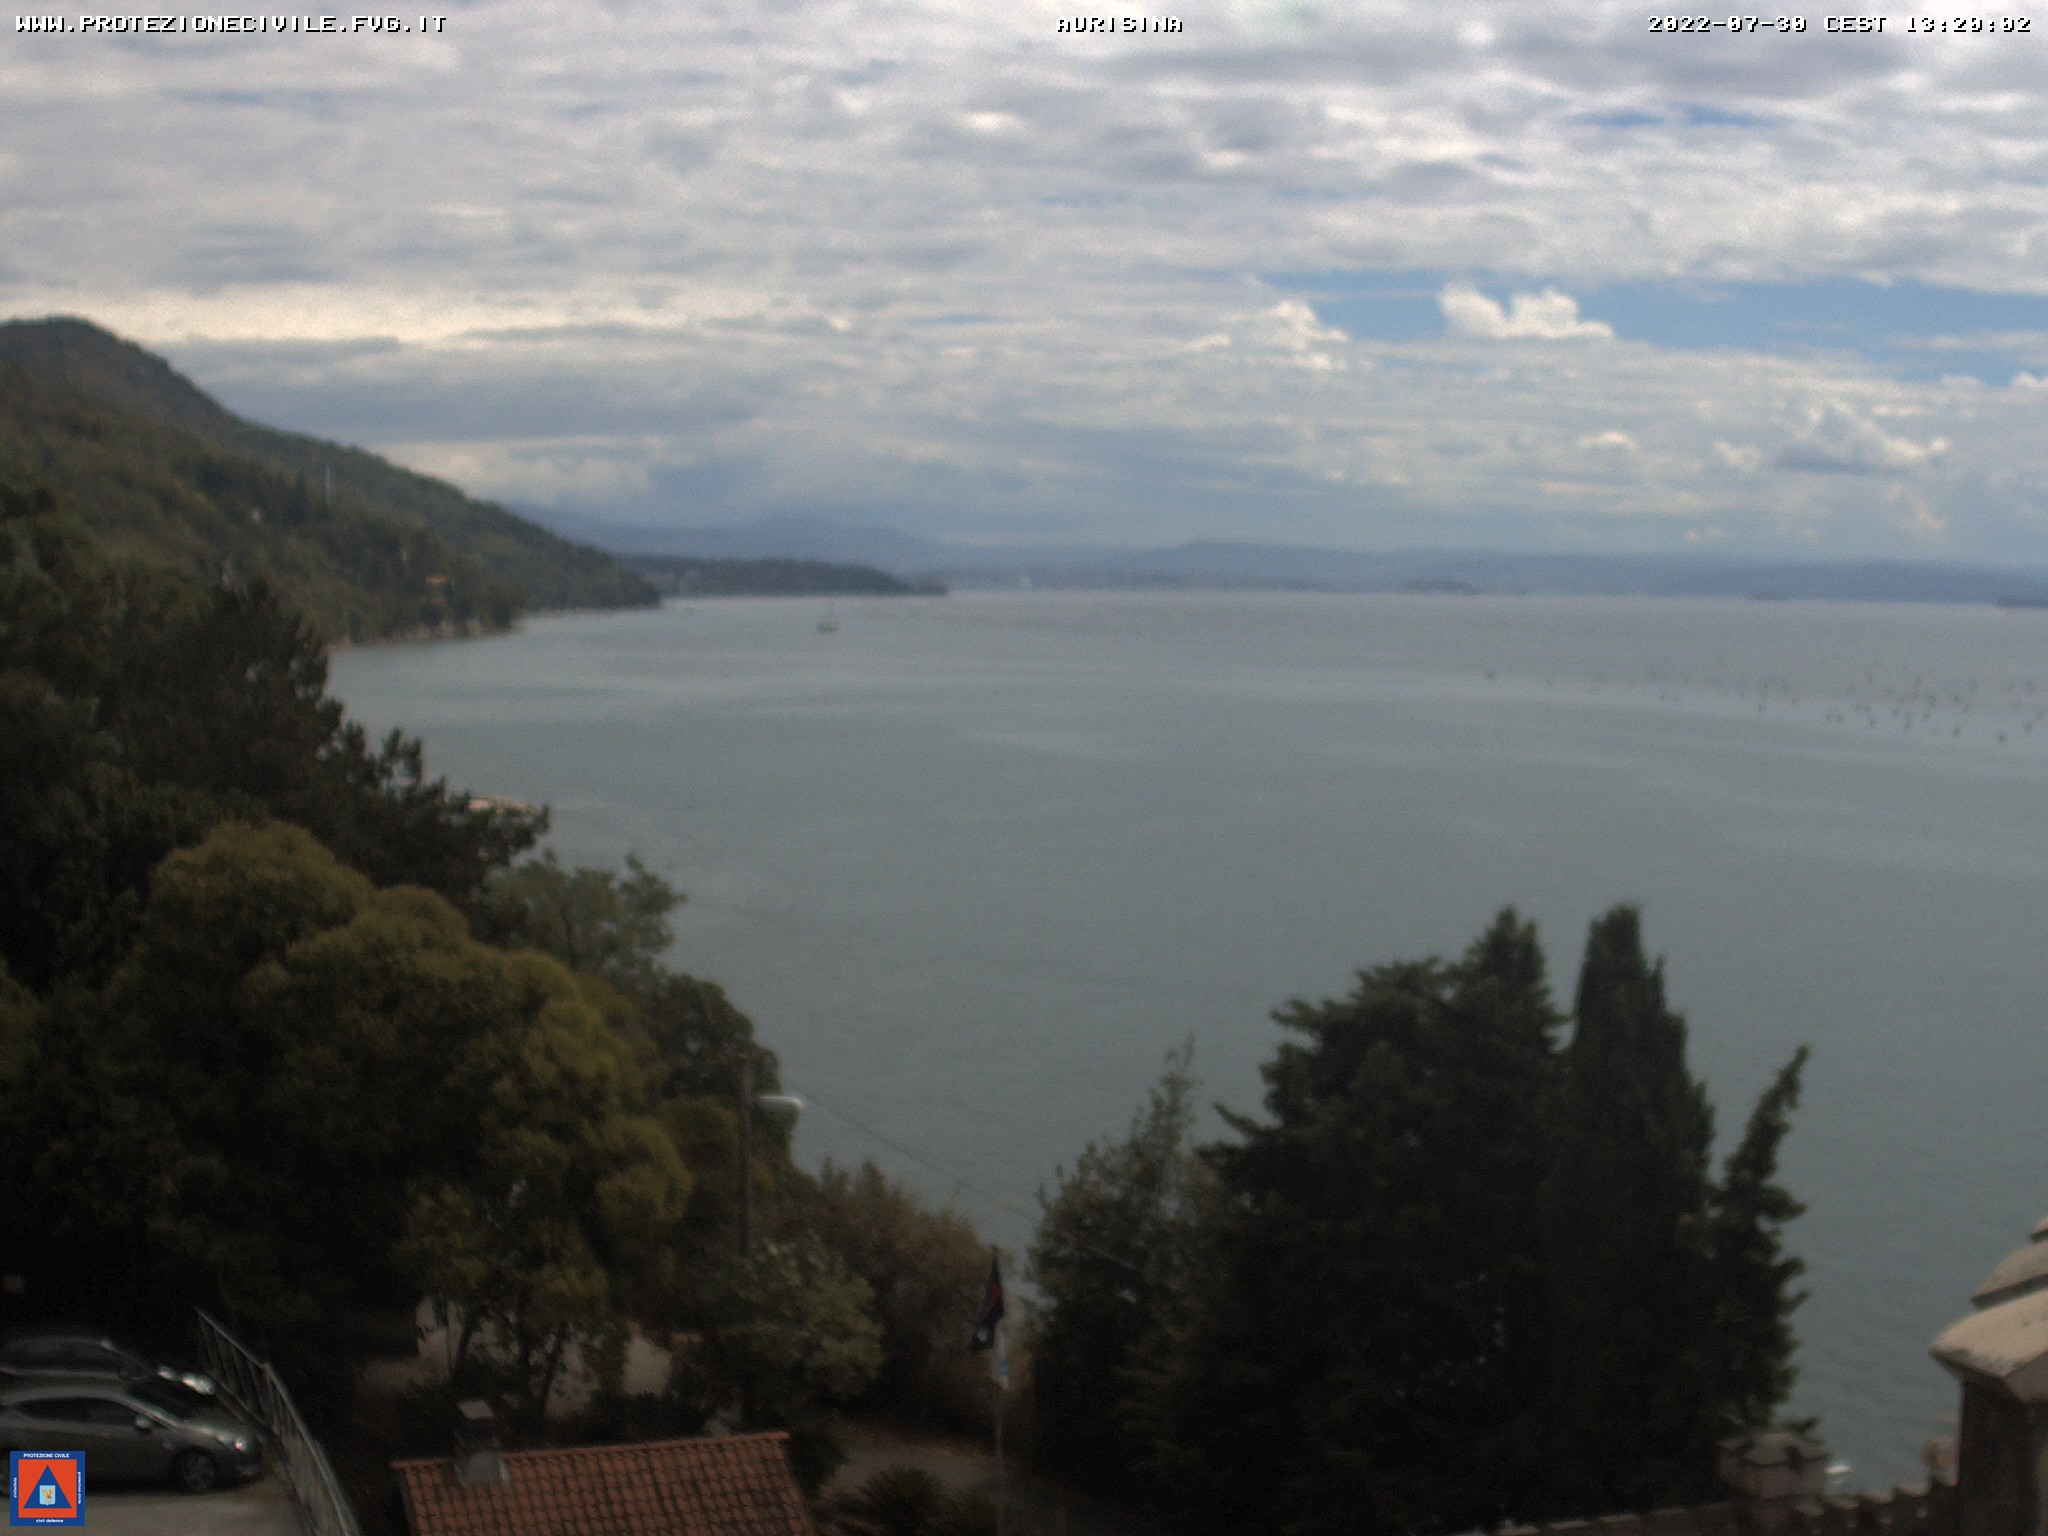 Webcam Trieste BIO & OGS